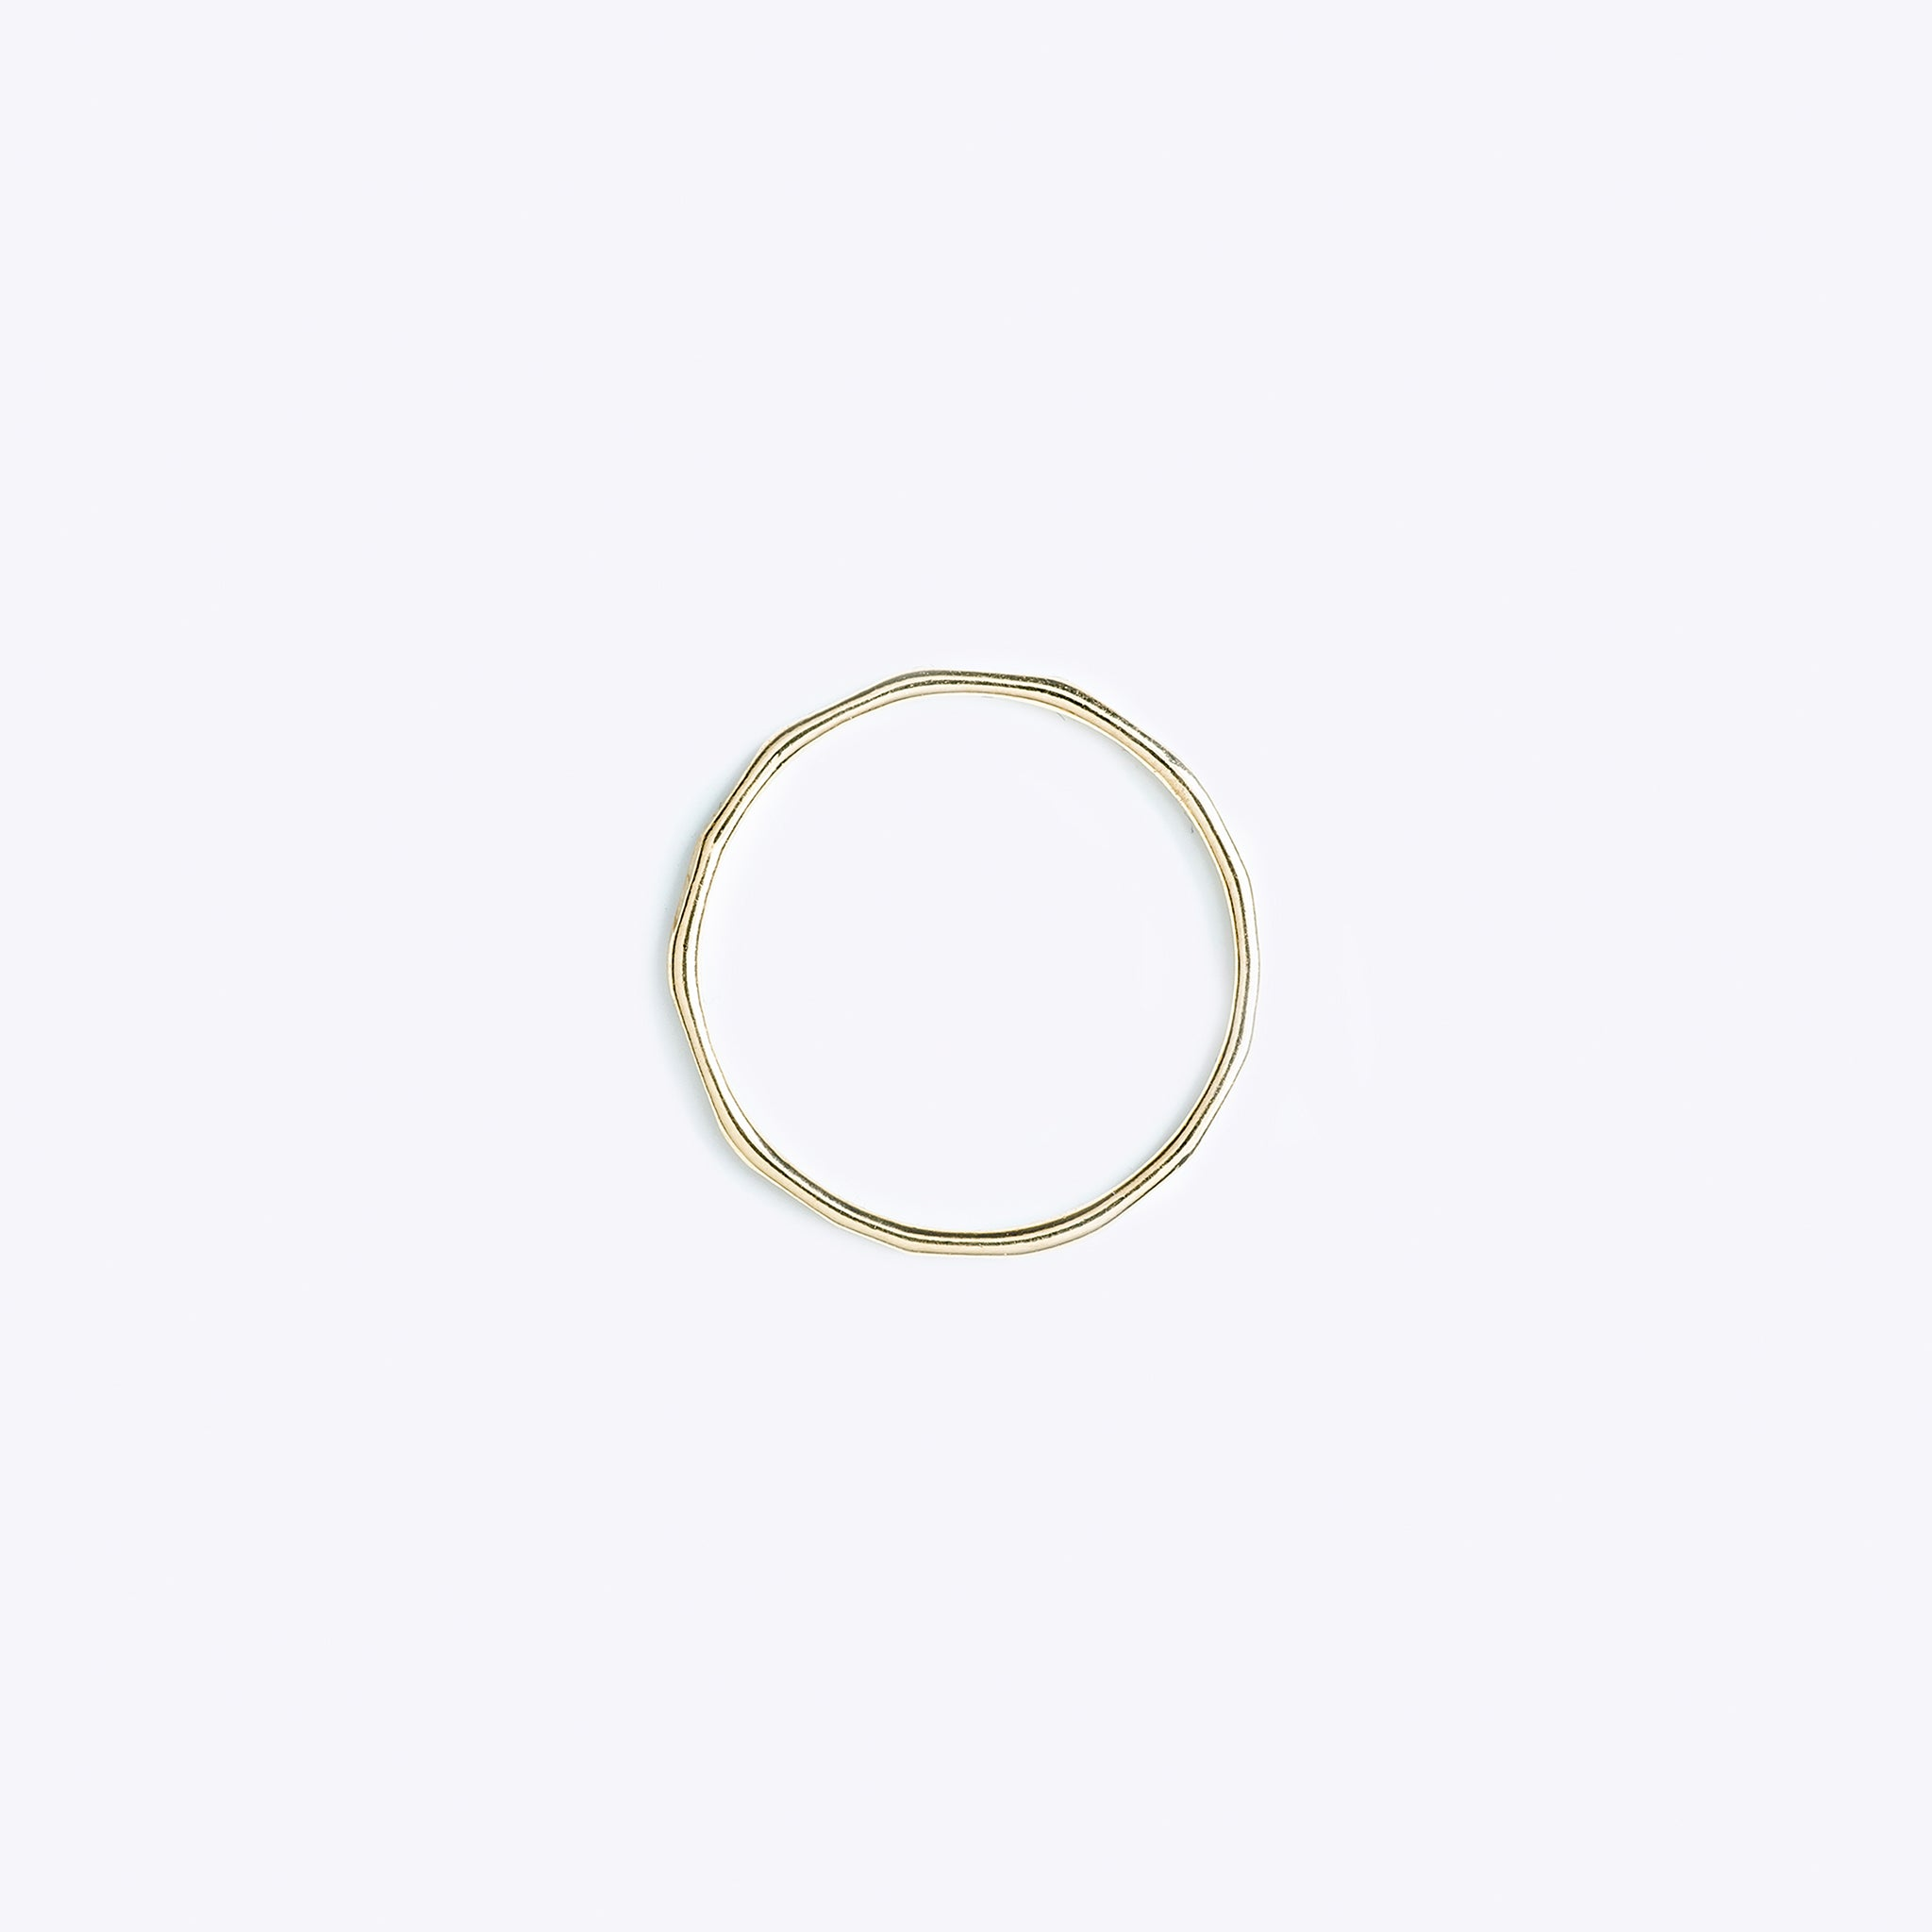 Wanderlust Life fine hammered gold ring, available in various sizes. Hand finished gold rings in our UK studio.